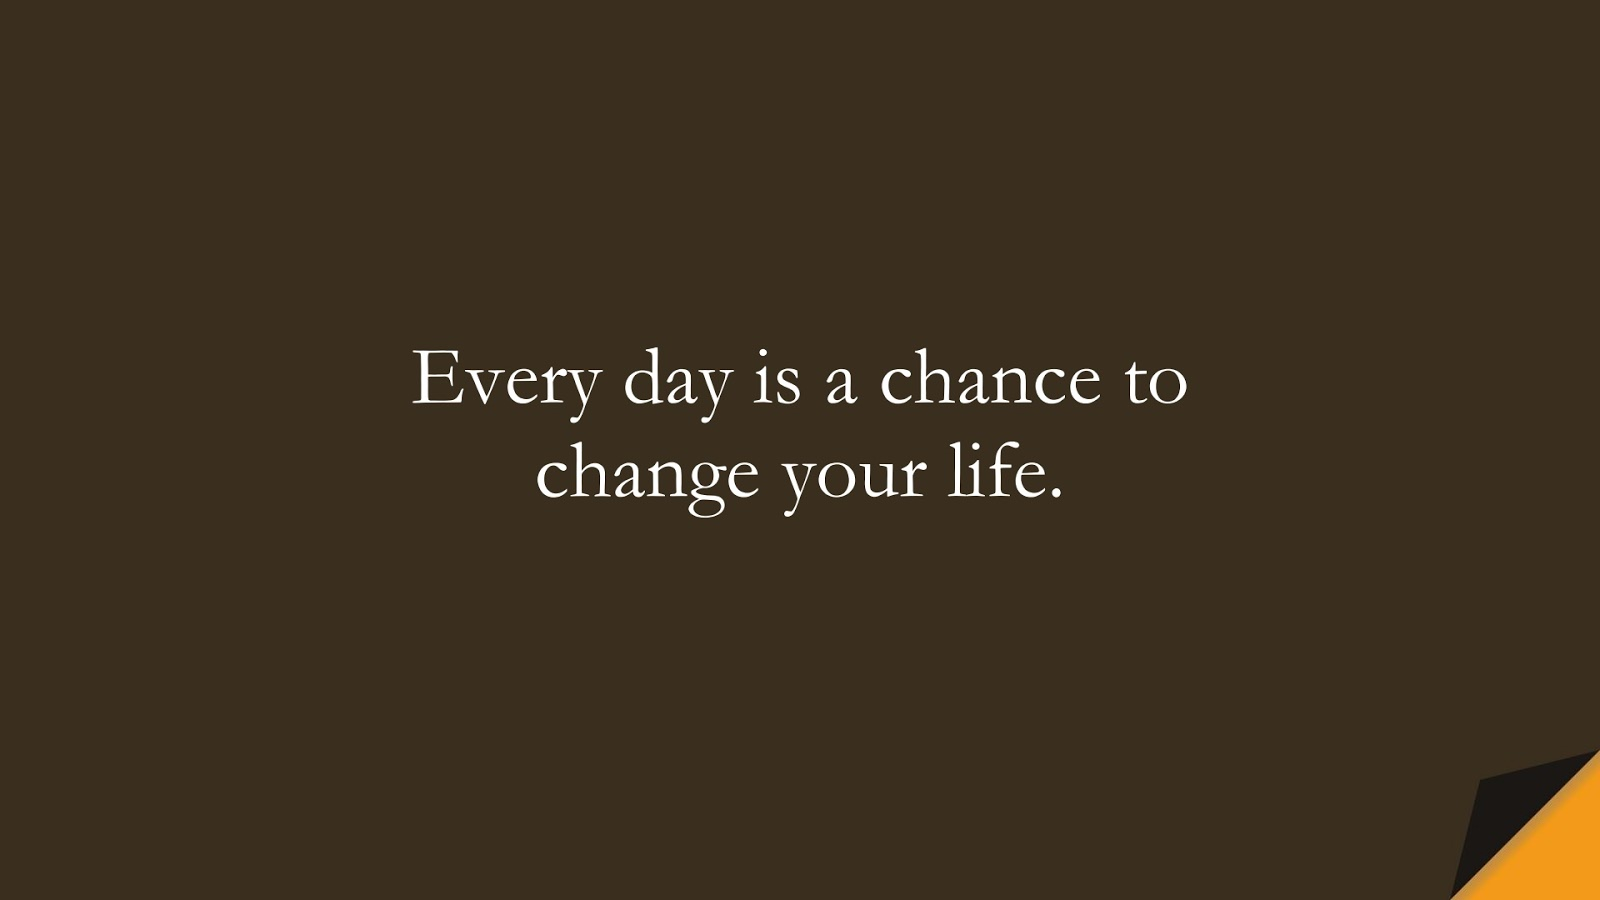 Every day is a chance to change your life.FALSE